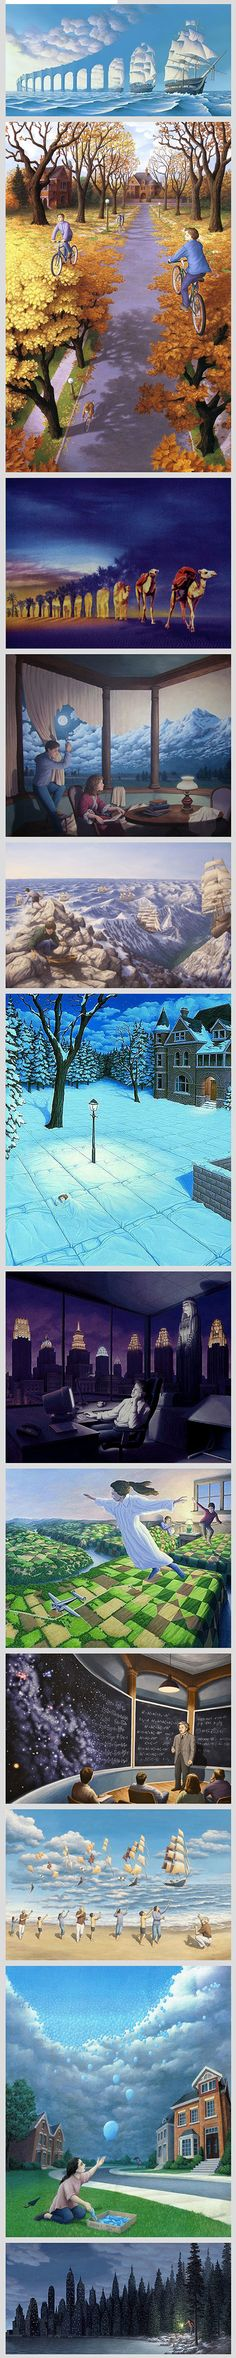 Magic & realism – the two don't really match, do they? But Rob Gonsalves, a Canadian painter of magic realism, demonstrates great skills in merging the two different worlds in his unique and surrealistic optical illusion artworks. Optical Illusion Paintings, Optical Illusions, Op Art, Amazing Art, Amazing Pics, Canadian Painters, Magic Realism, Art Sculpture, Illusion Art